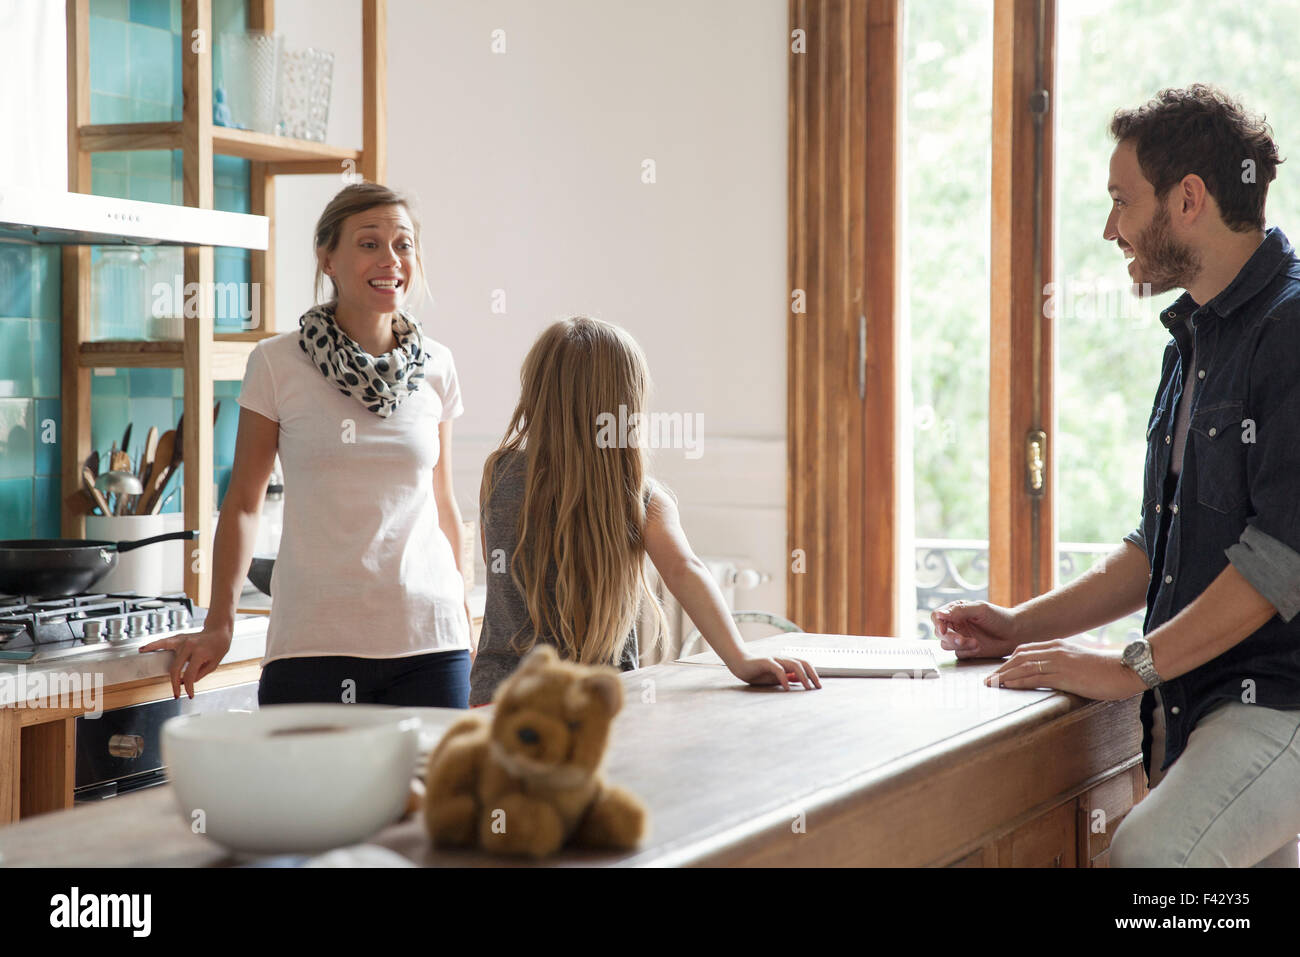 Family spending time together at home - Stock Image